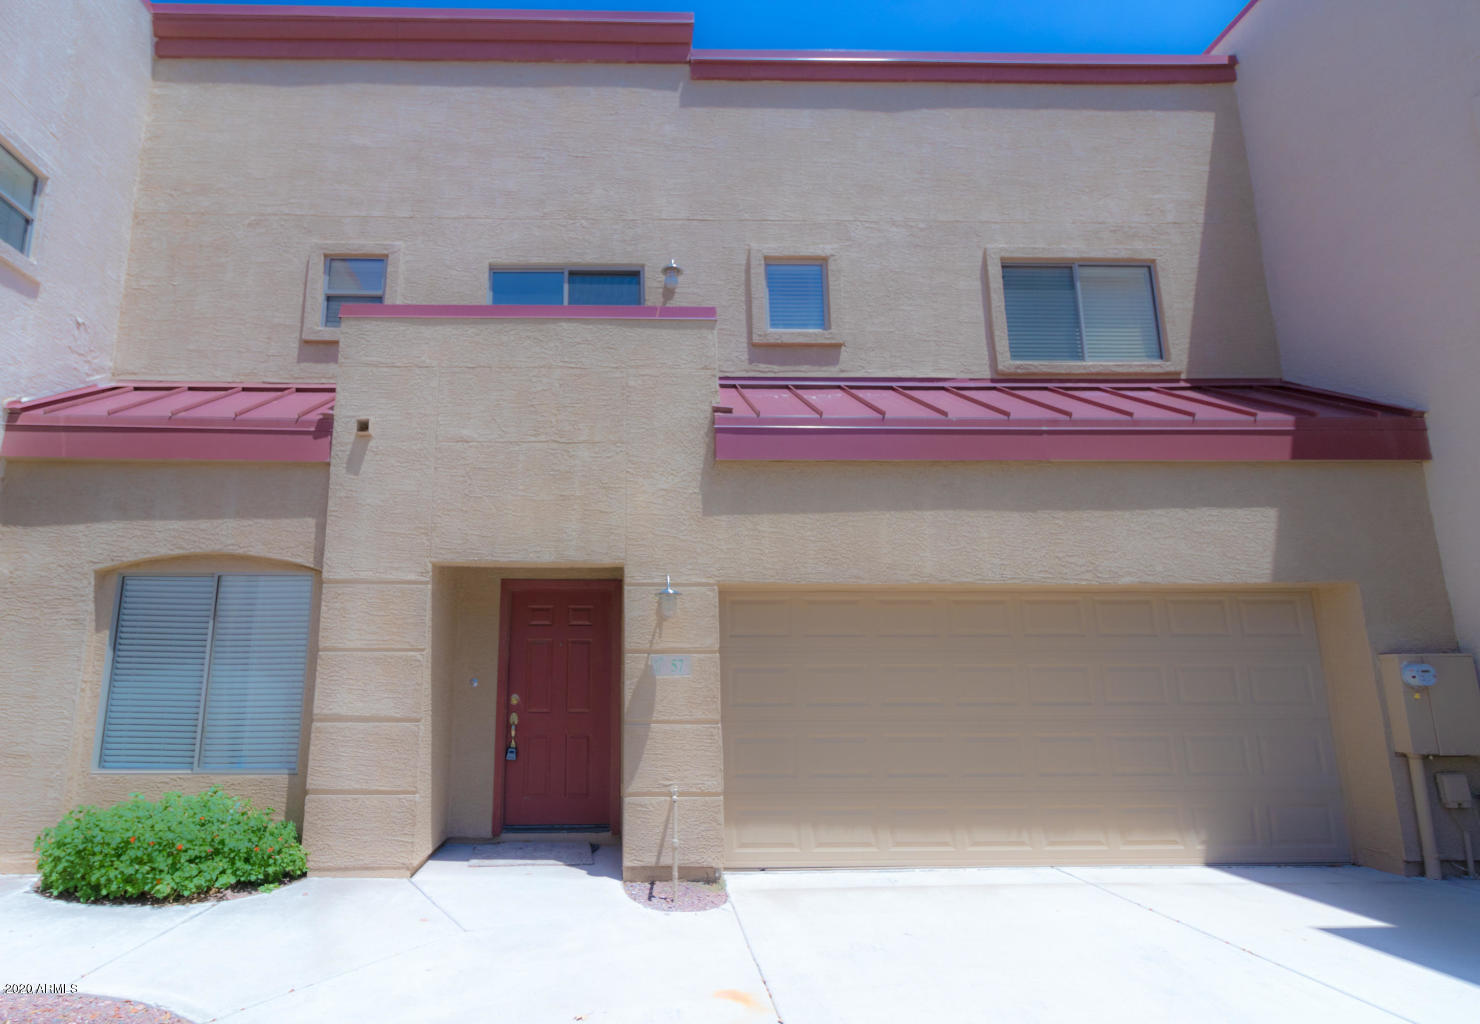 Photo of 1015 S Val Vista Drive #3, Mesa, AZ 85204